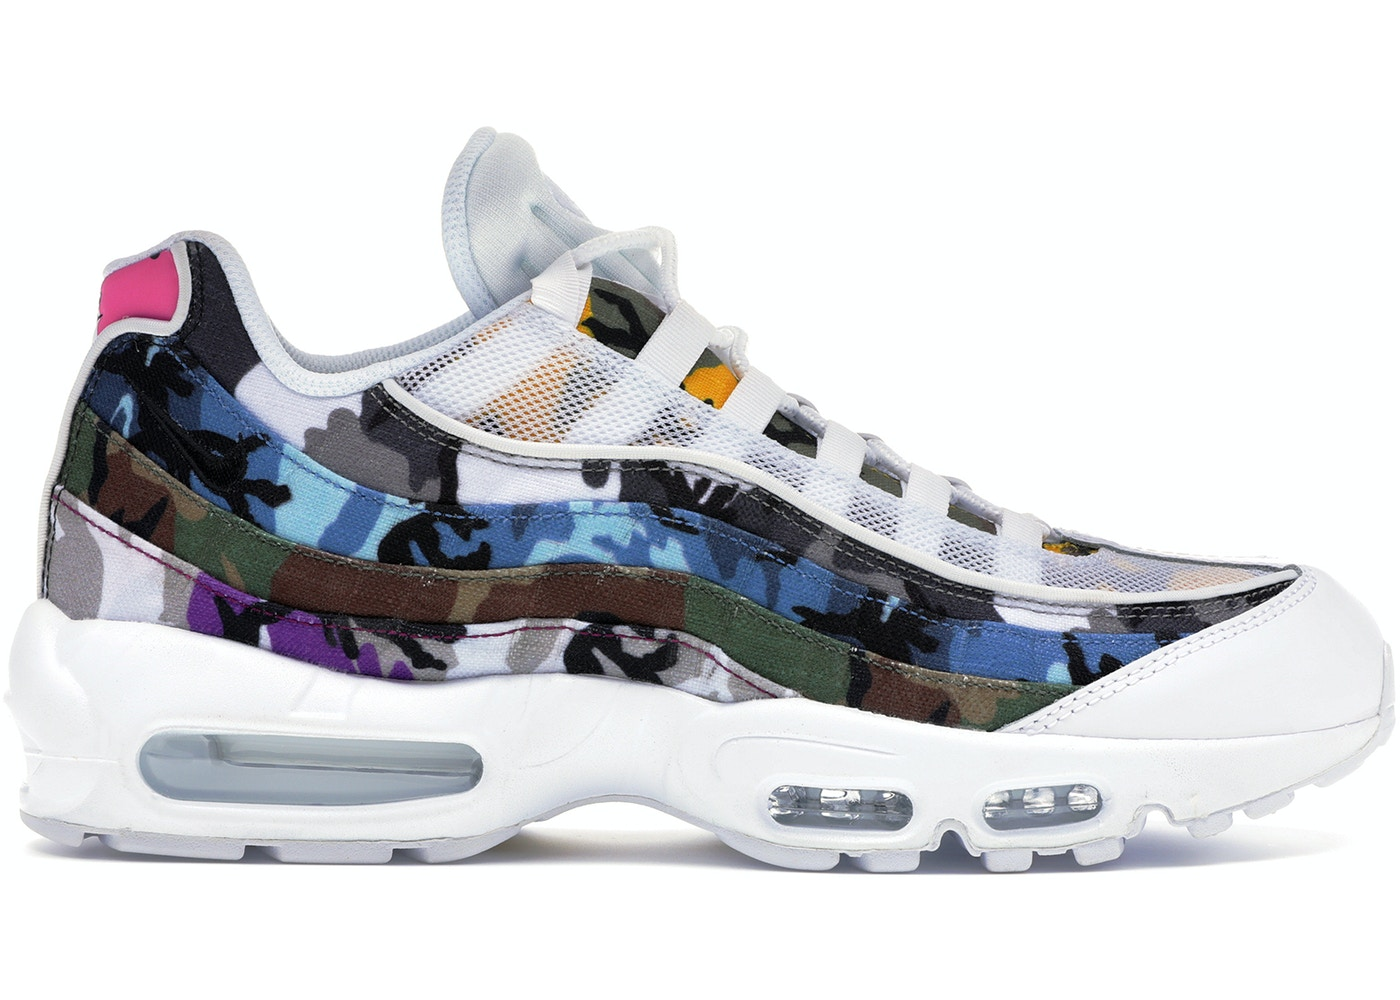 6f184a70b01b Buy Nike Air Max 95 Shoes   Deadstock Sneakers